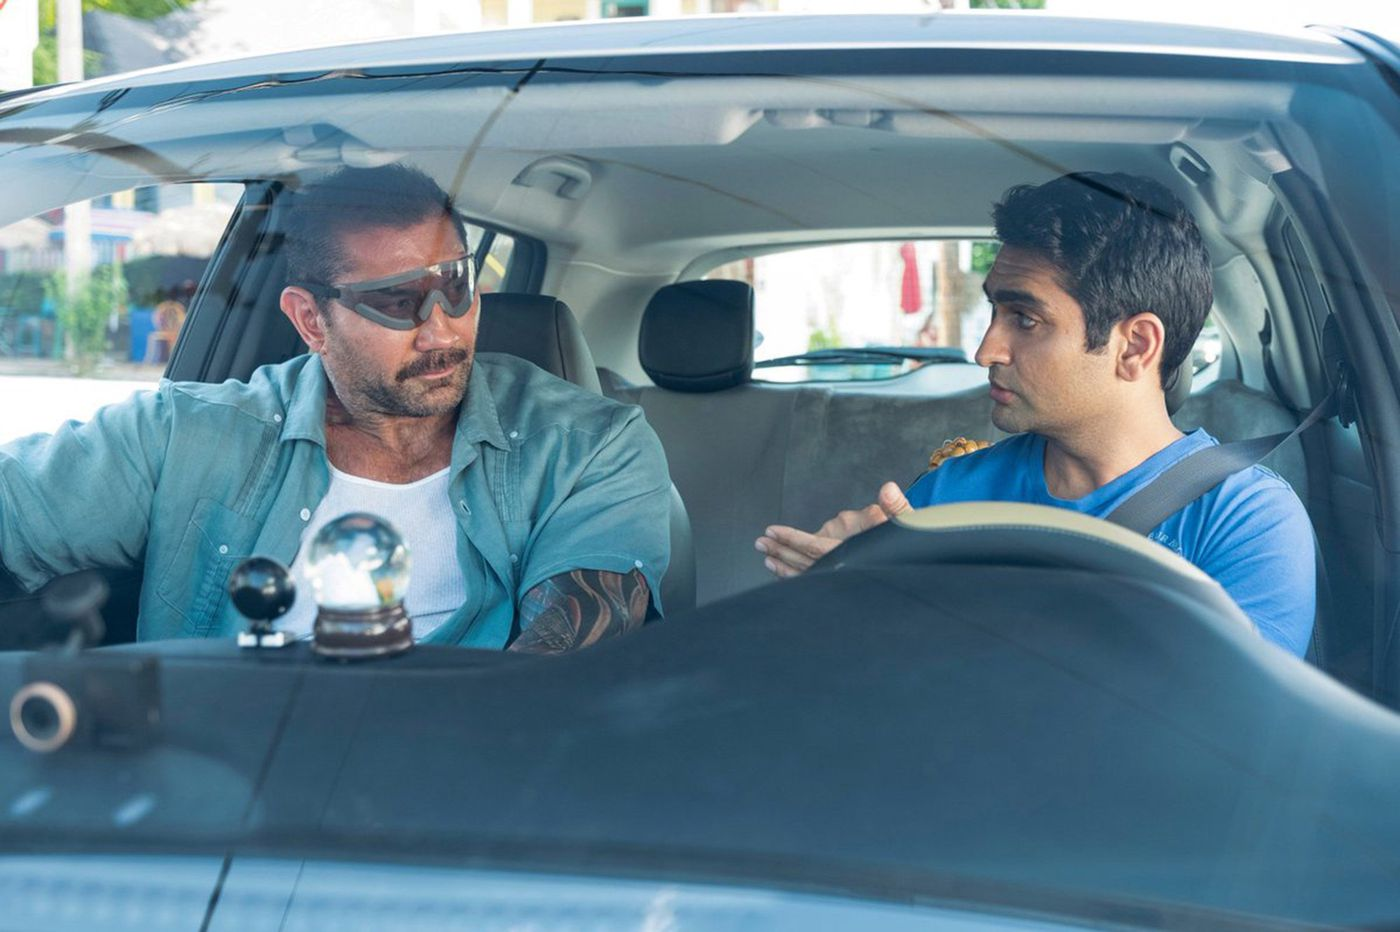 Dave Bautista and Kumail Nanjiani talk about their smokin' '80s action comedy revival 'Stuber'